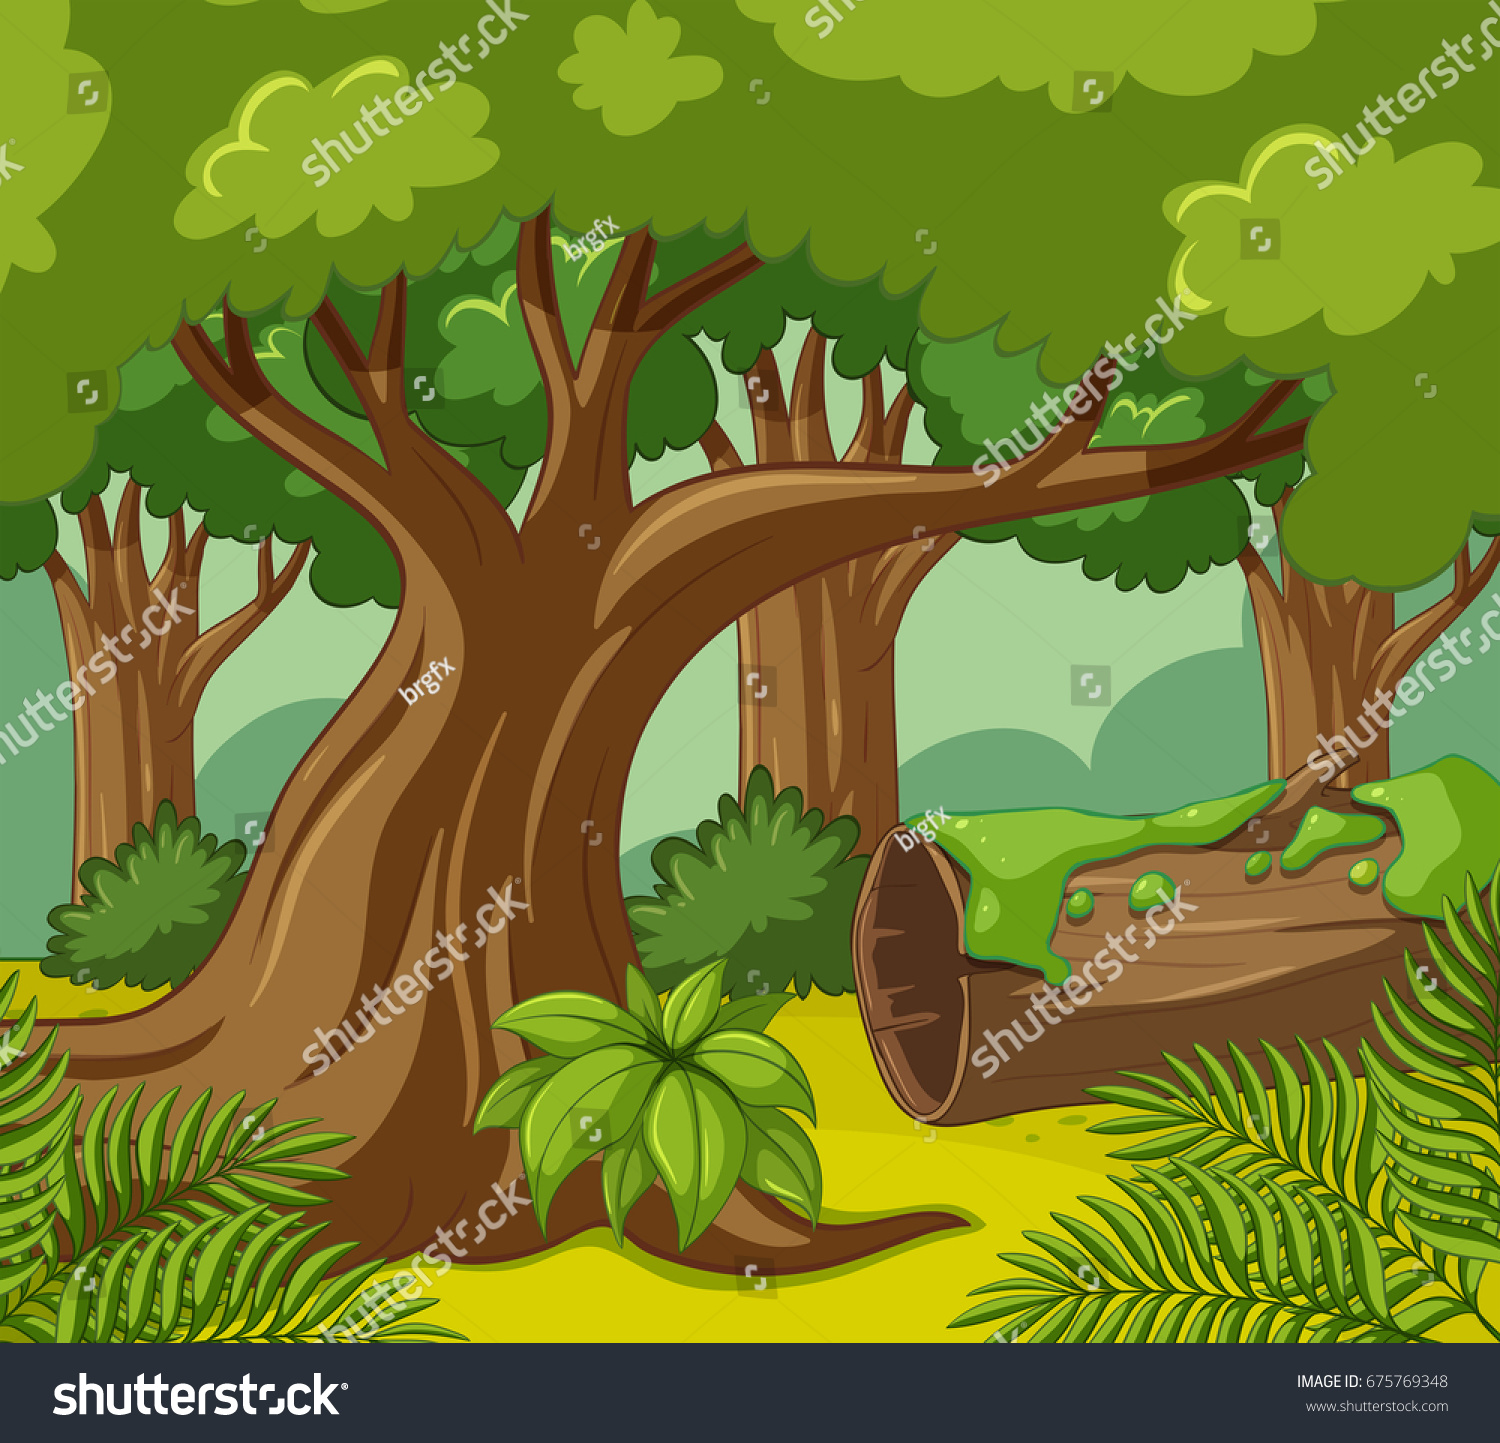 Forest Scene Many Trees Illustration Vectores En Stock 675769348 ...